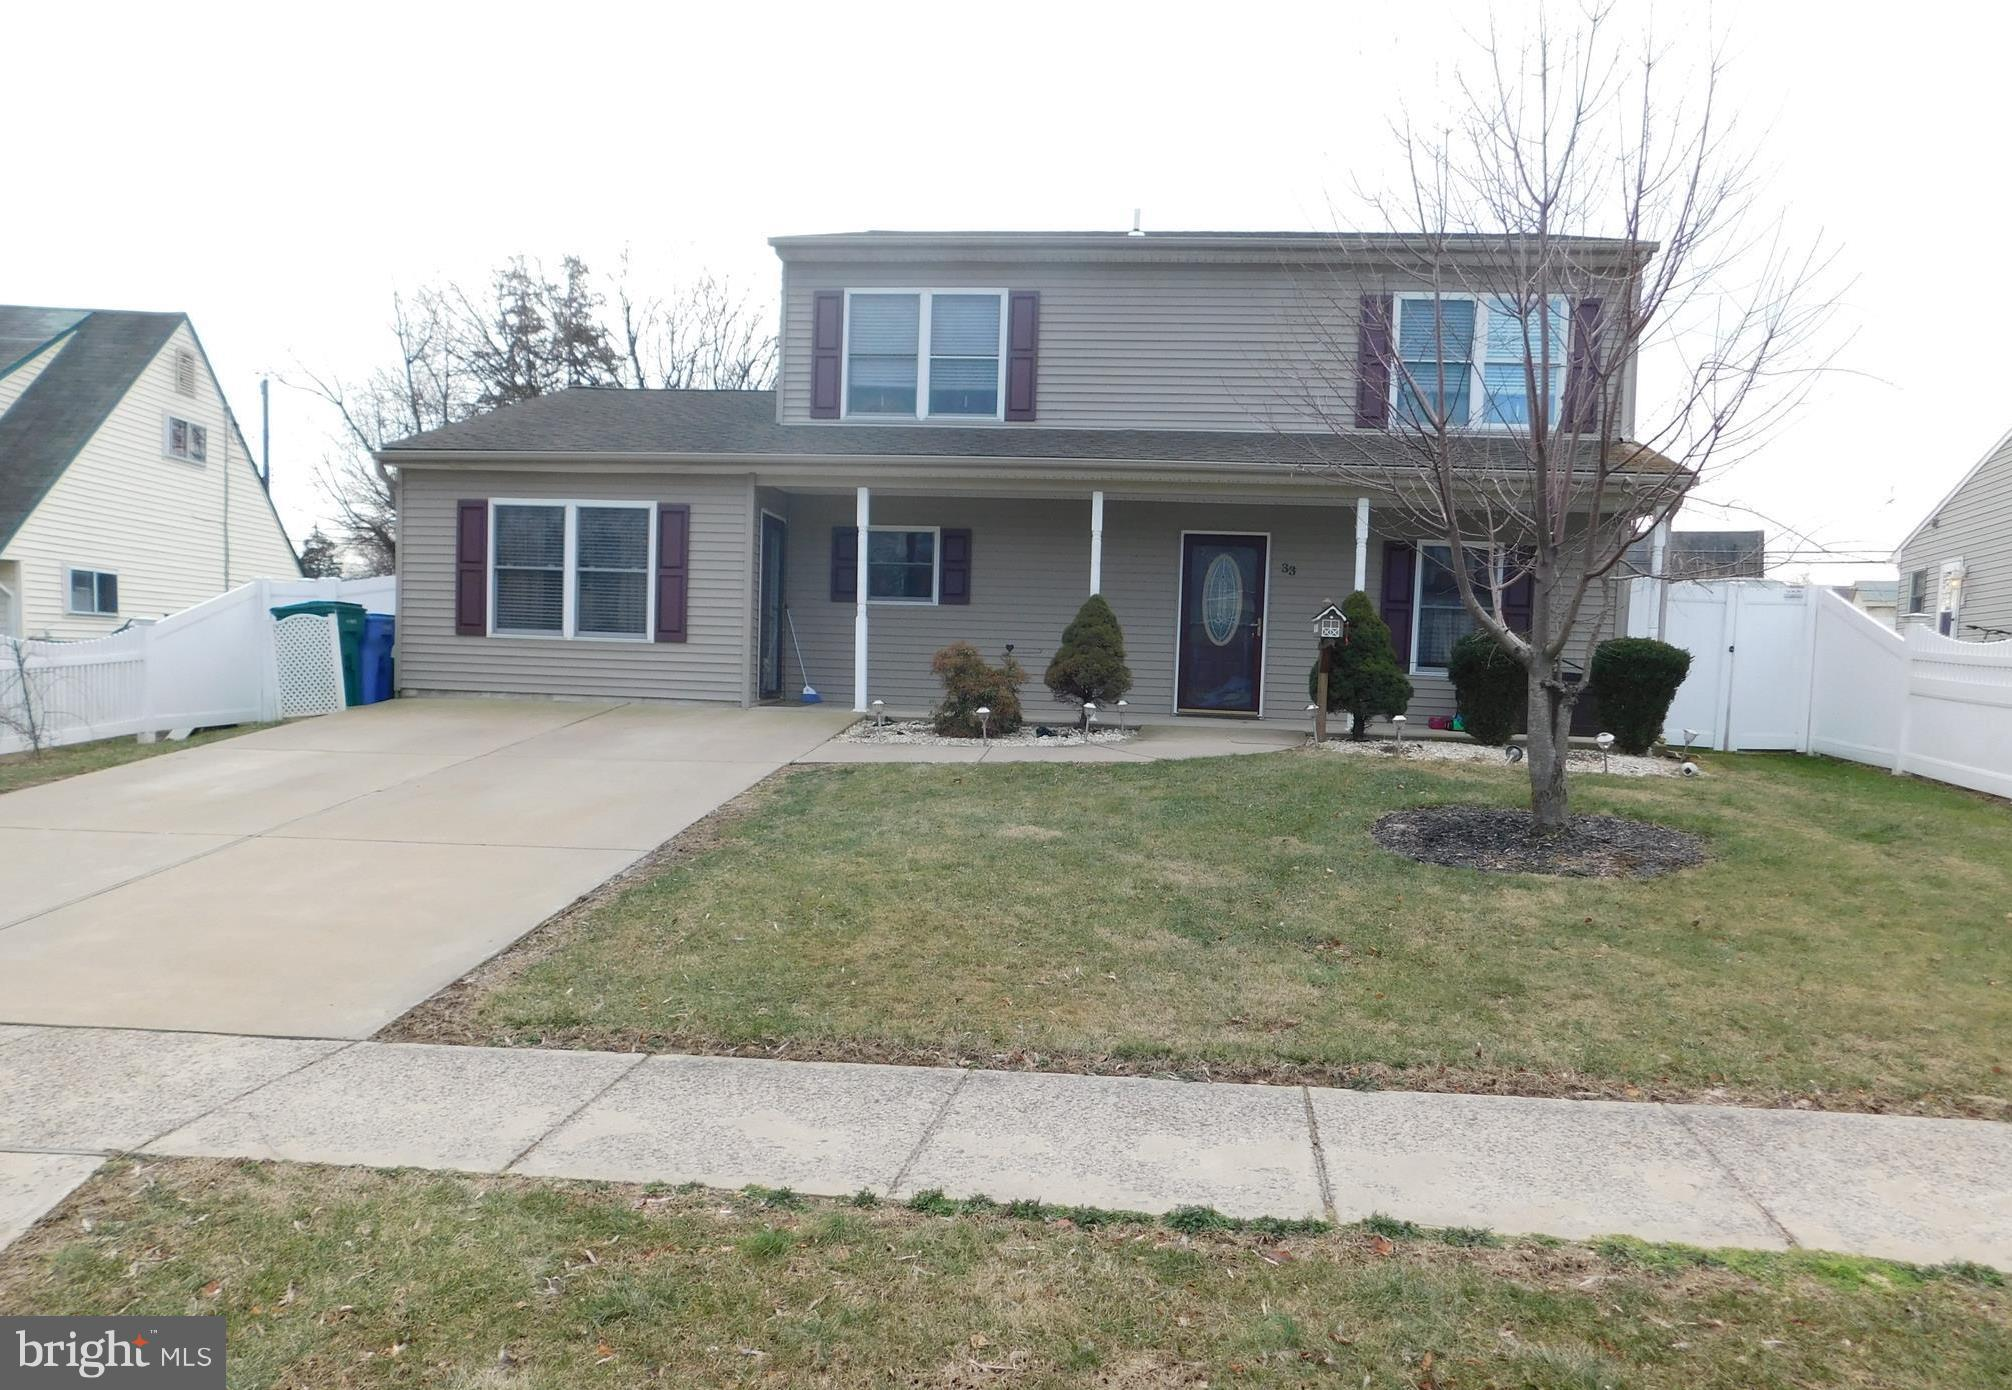 33 REDBROOK LANE, LEVITTOWN, PA 19055